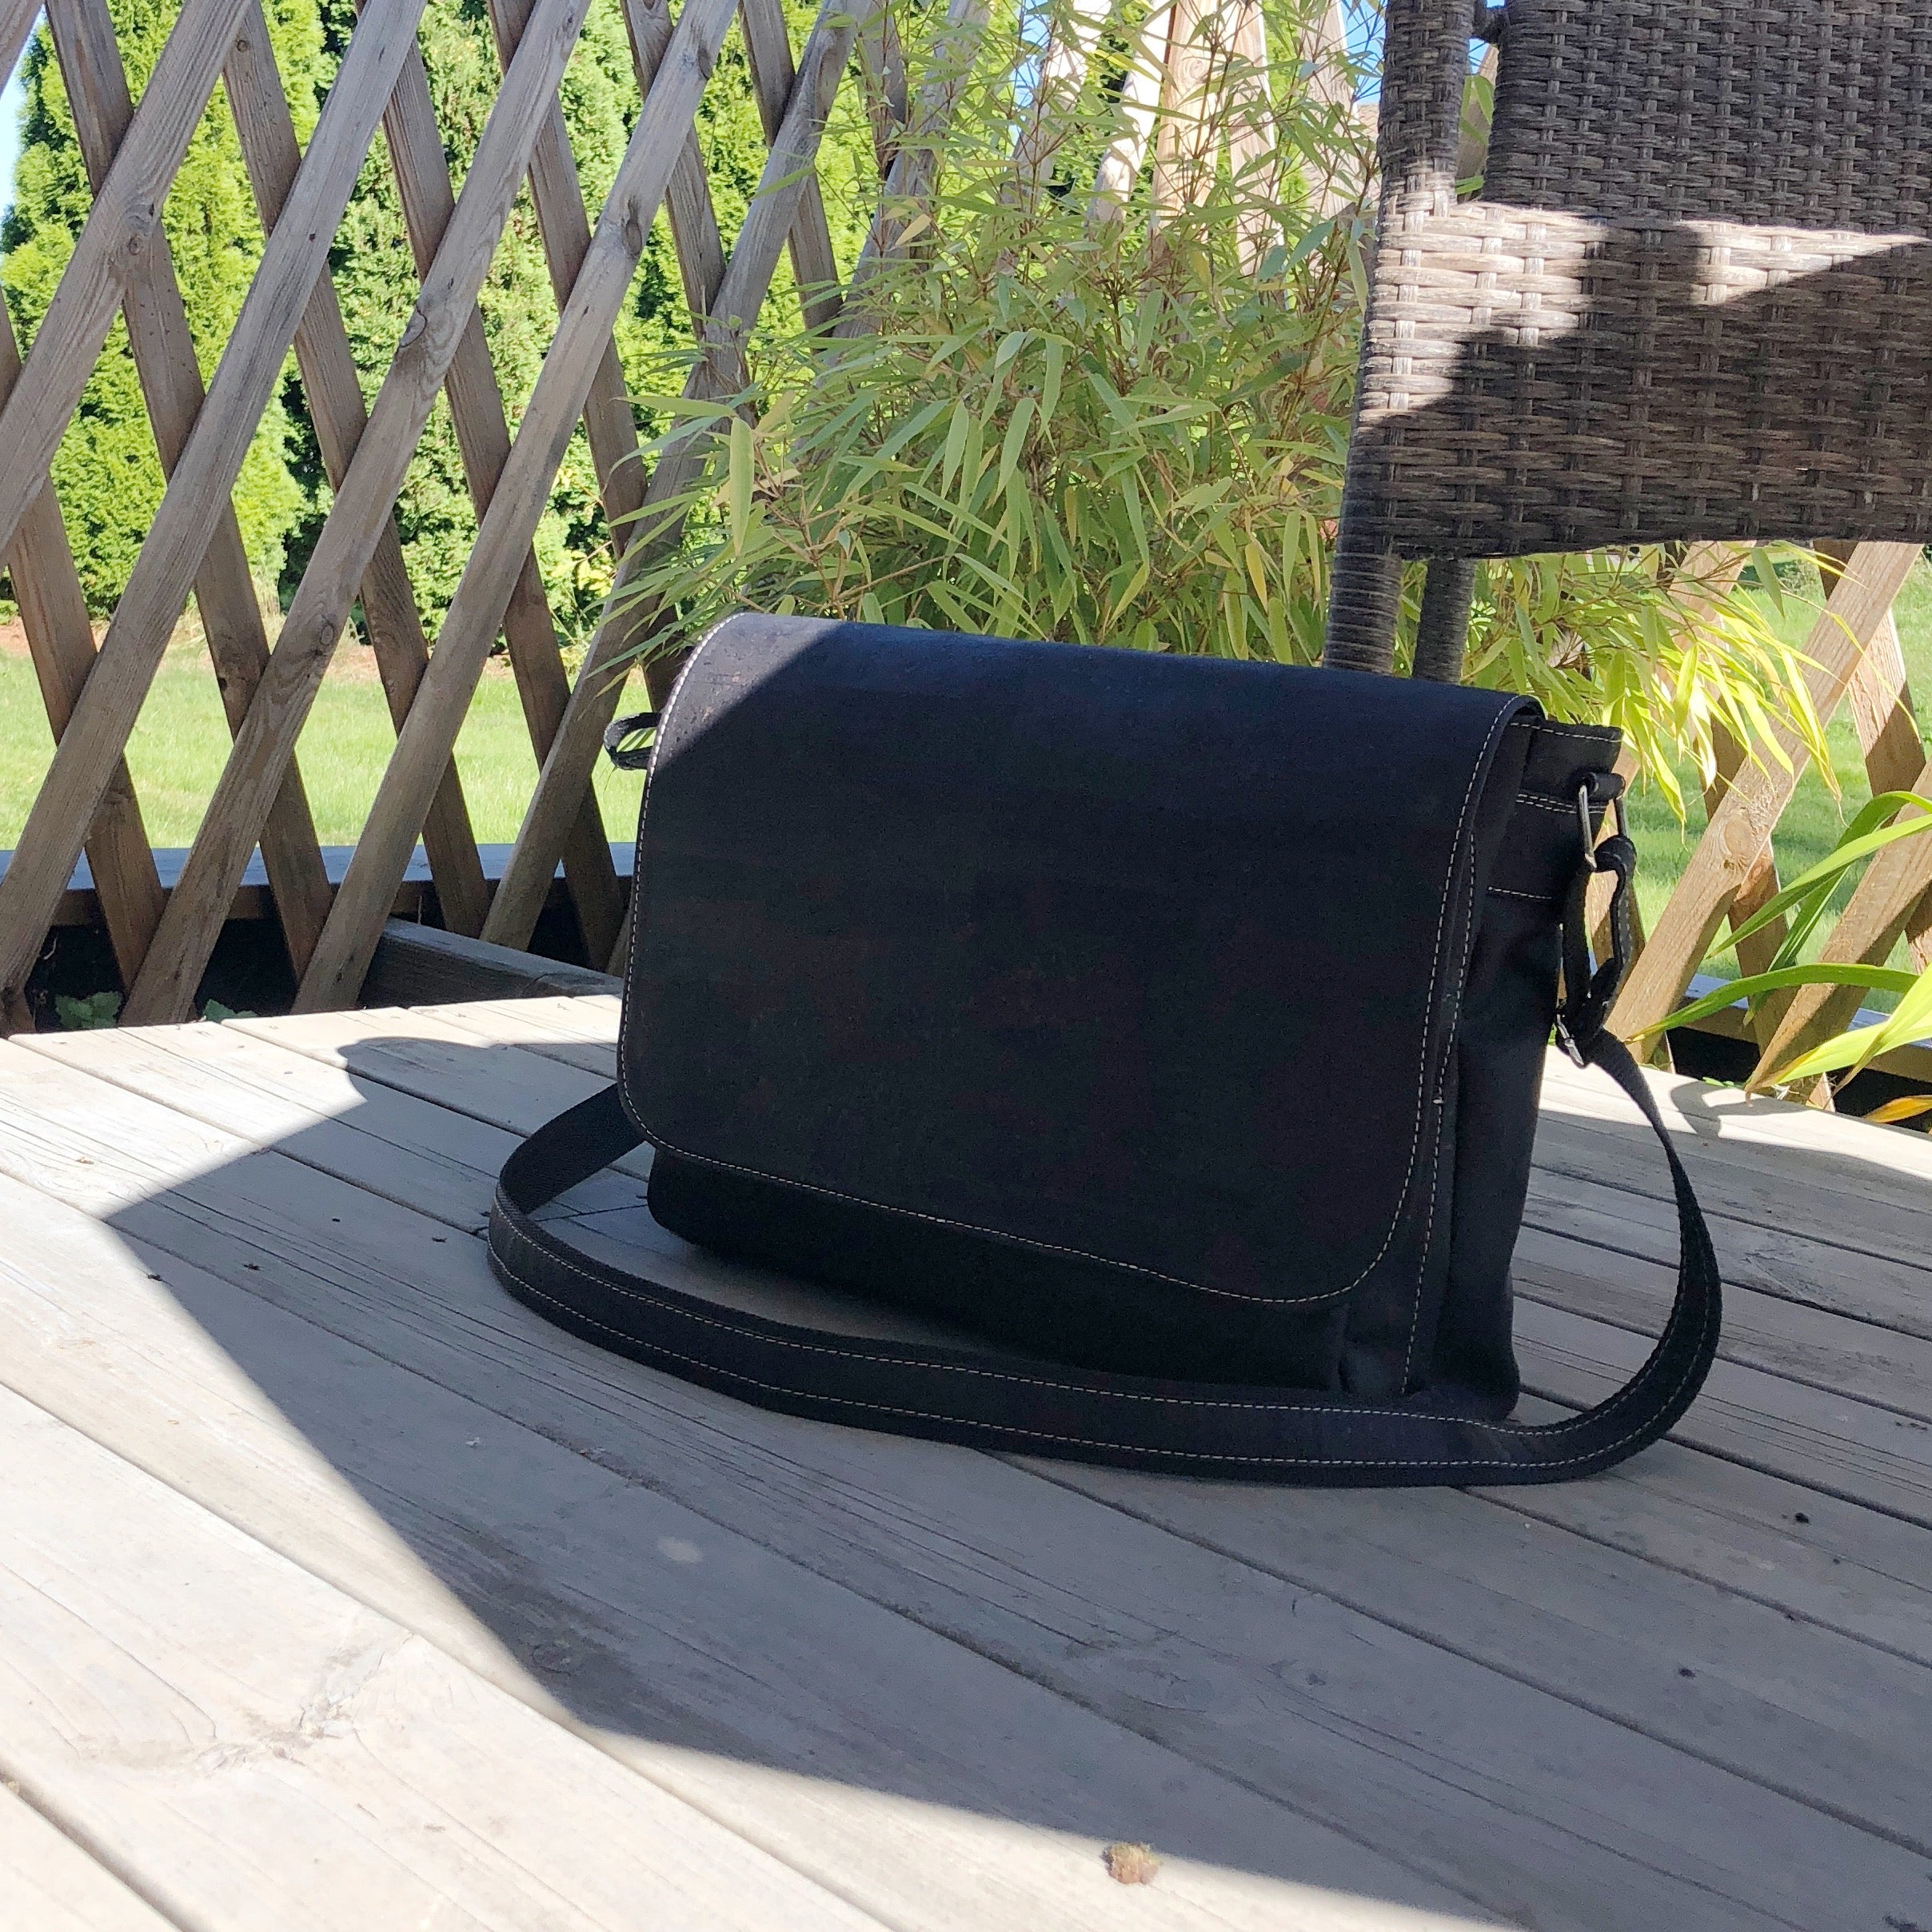 MESSENGER PC veske – Corkini